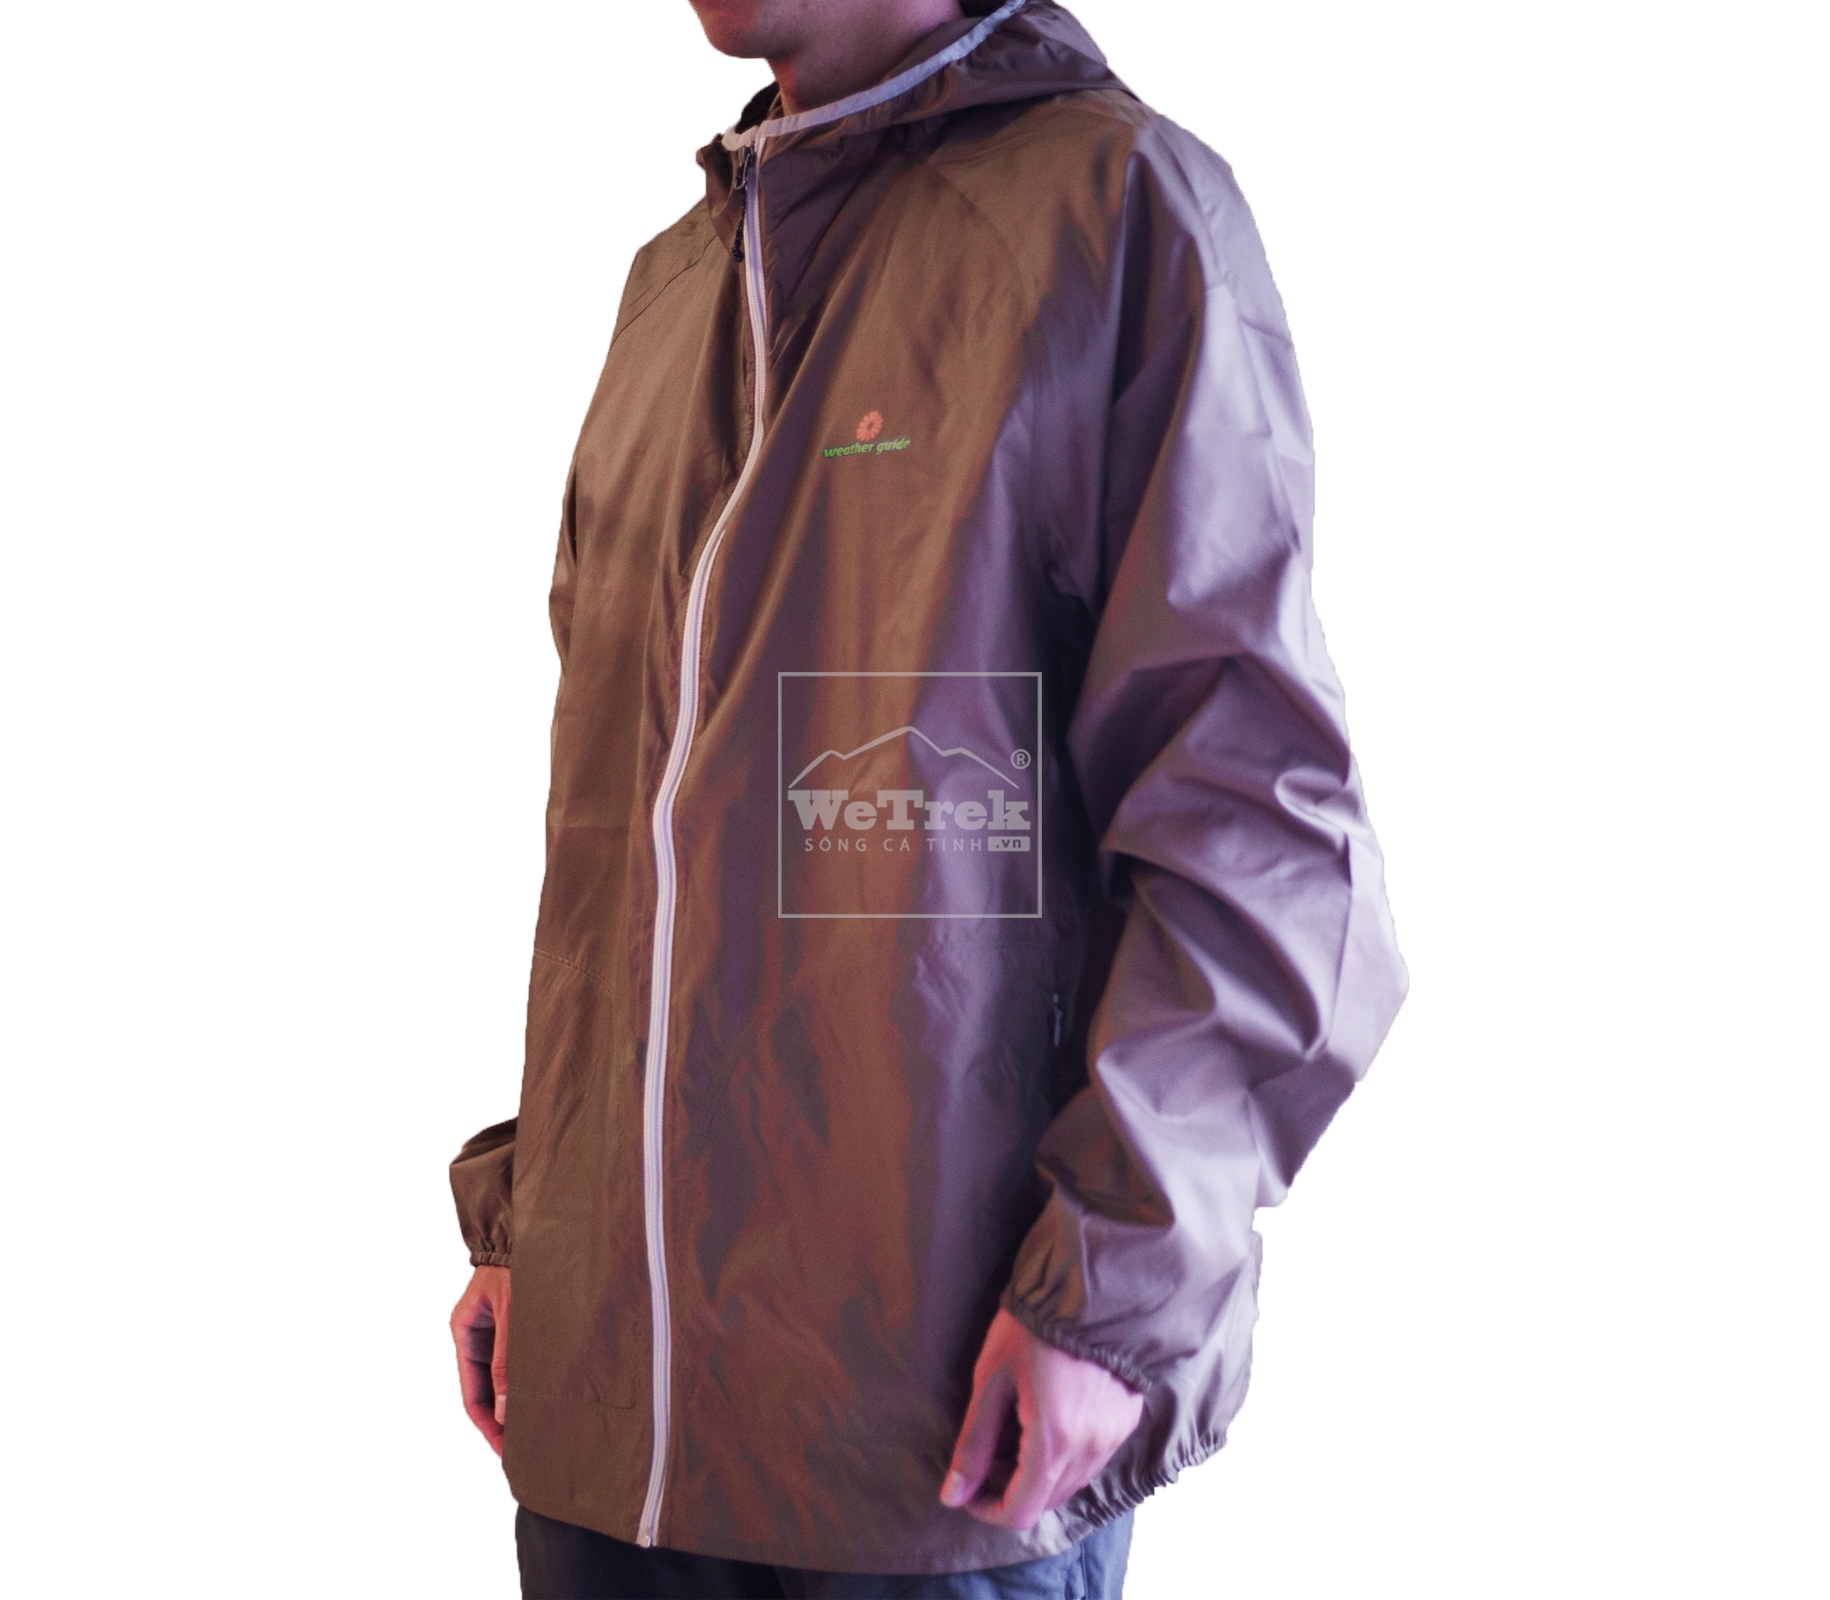 3-ao-khoac-nam-Weather-Guide-Mens-EX-LT-Hooded-CS-8290-wetrekvn.jpg